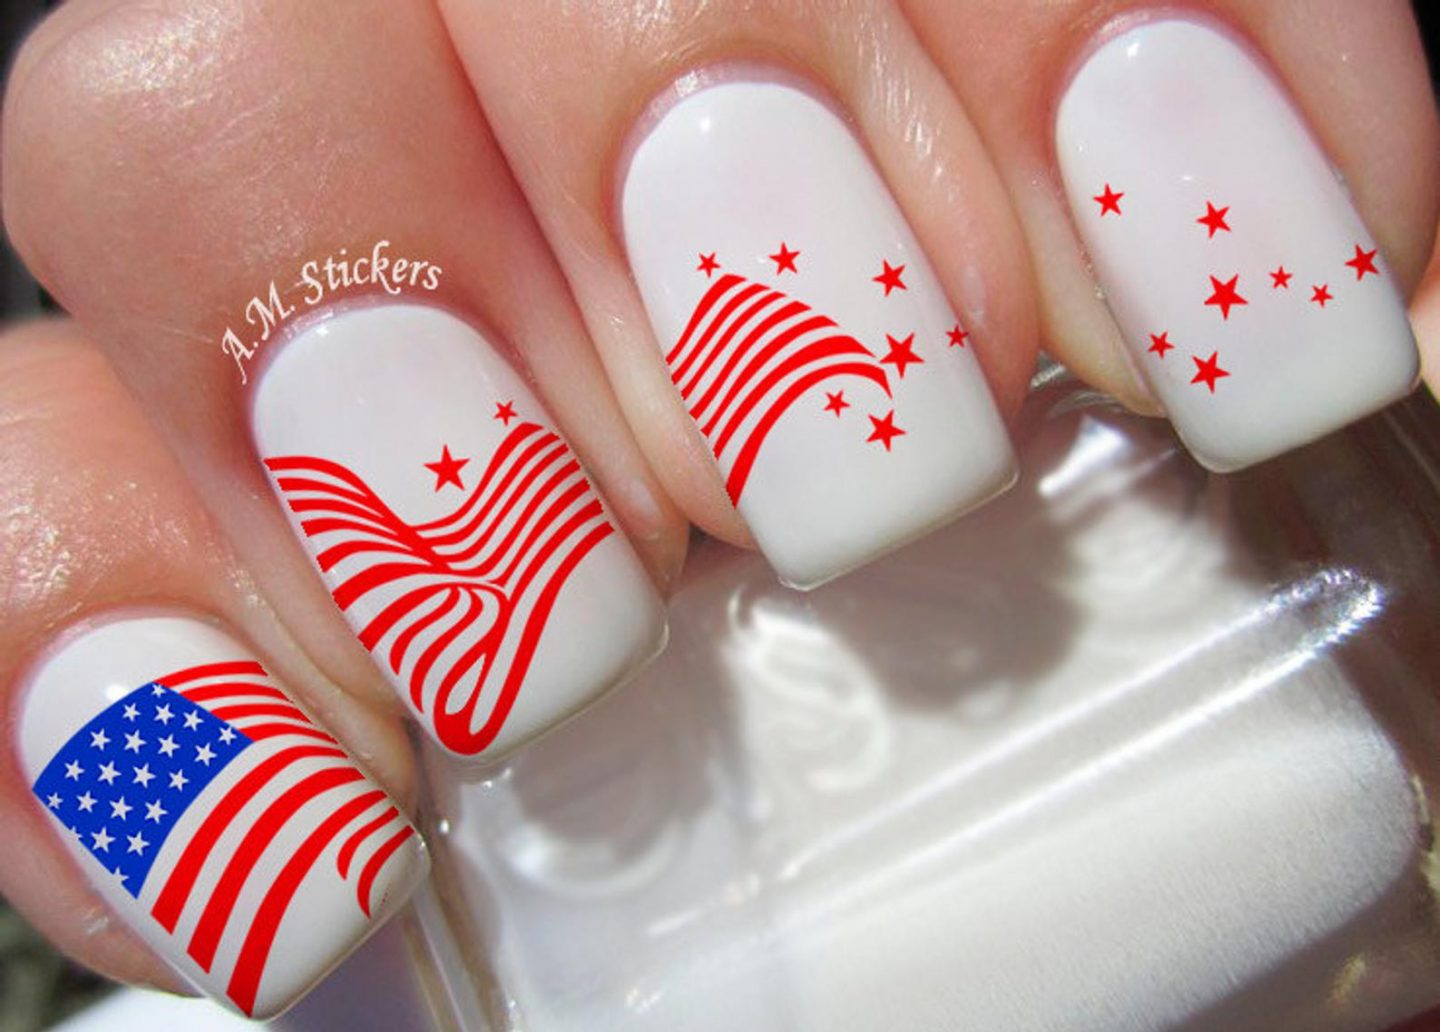 White 4th of July nail decals with American flag